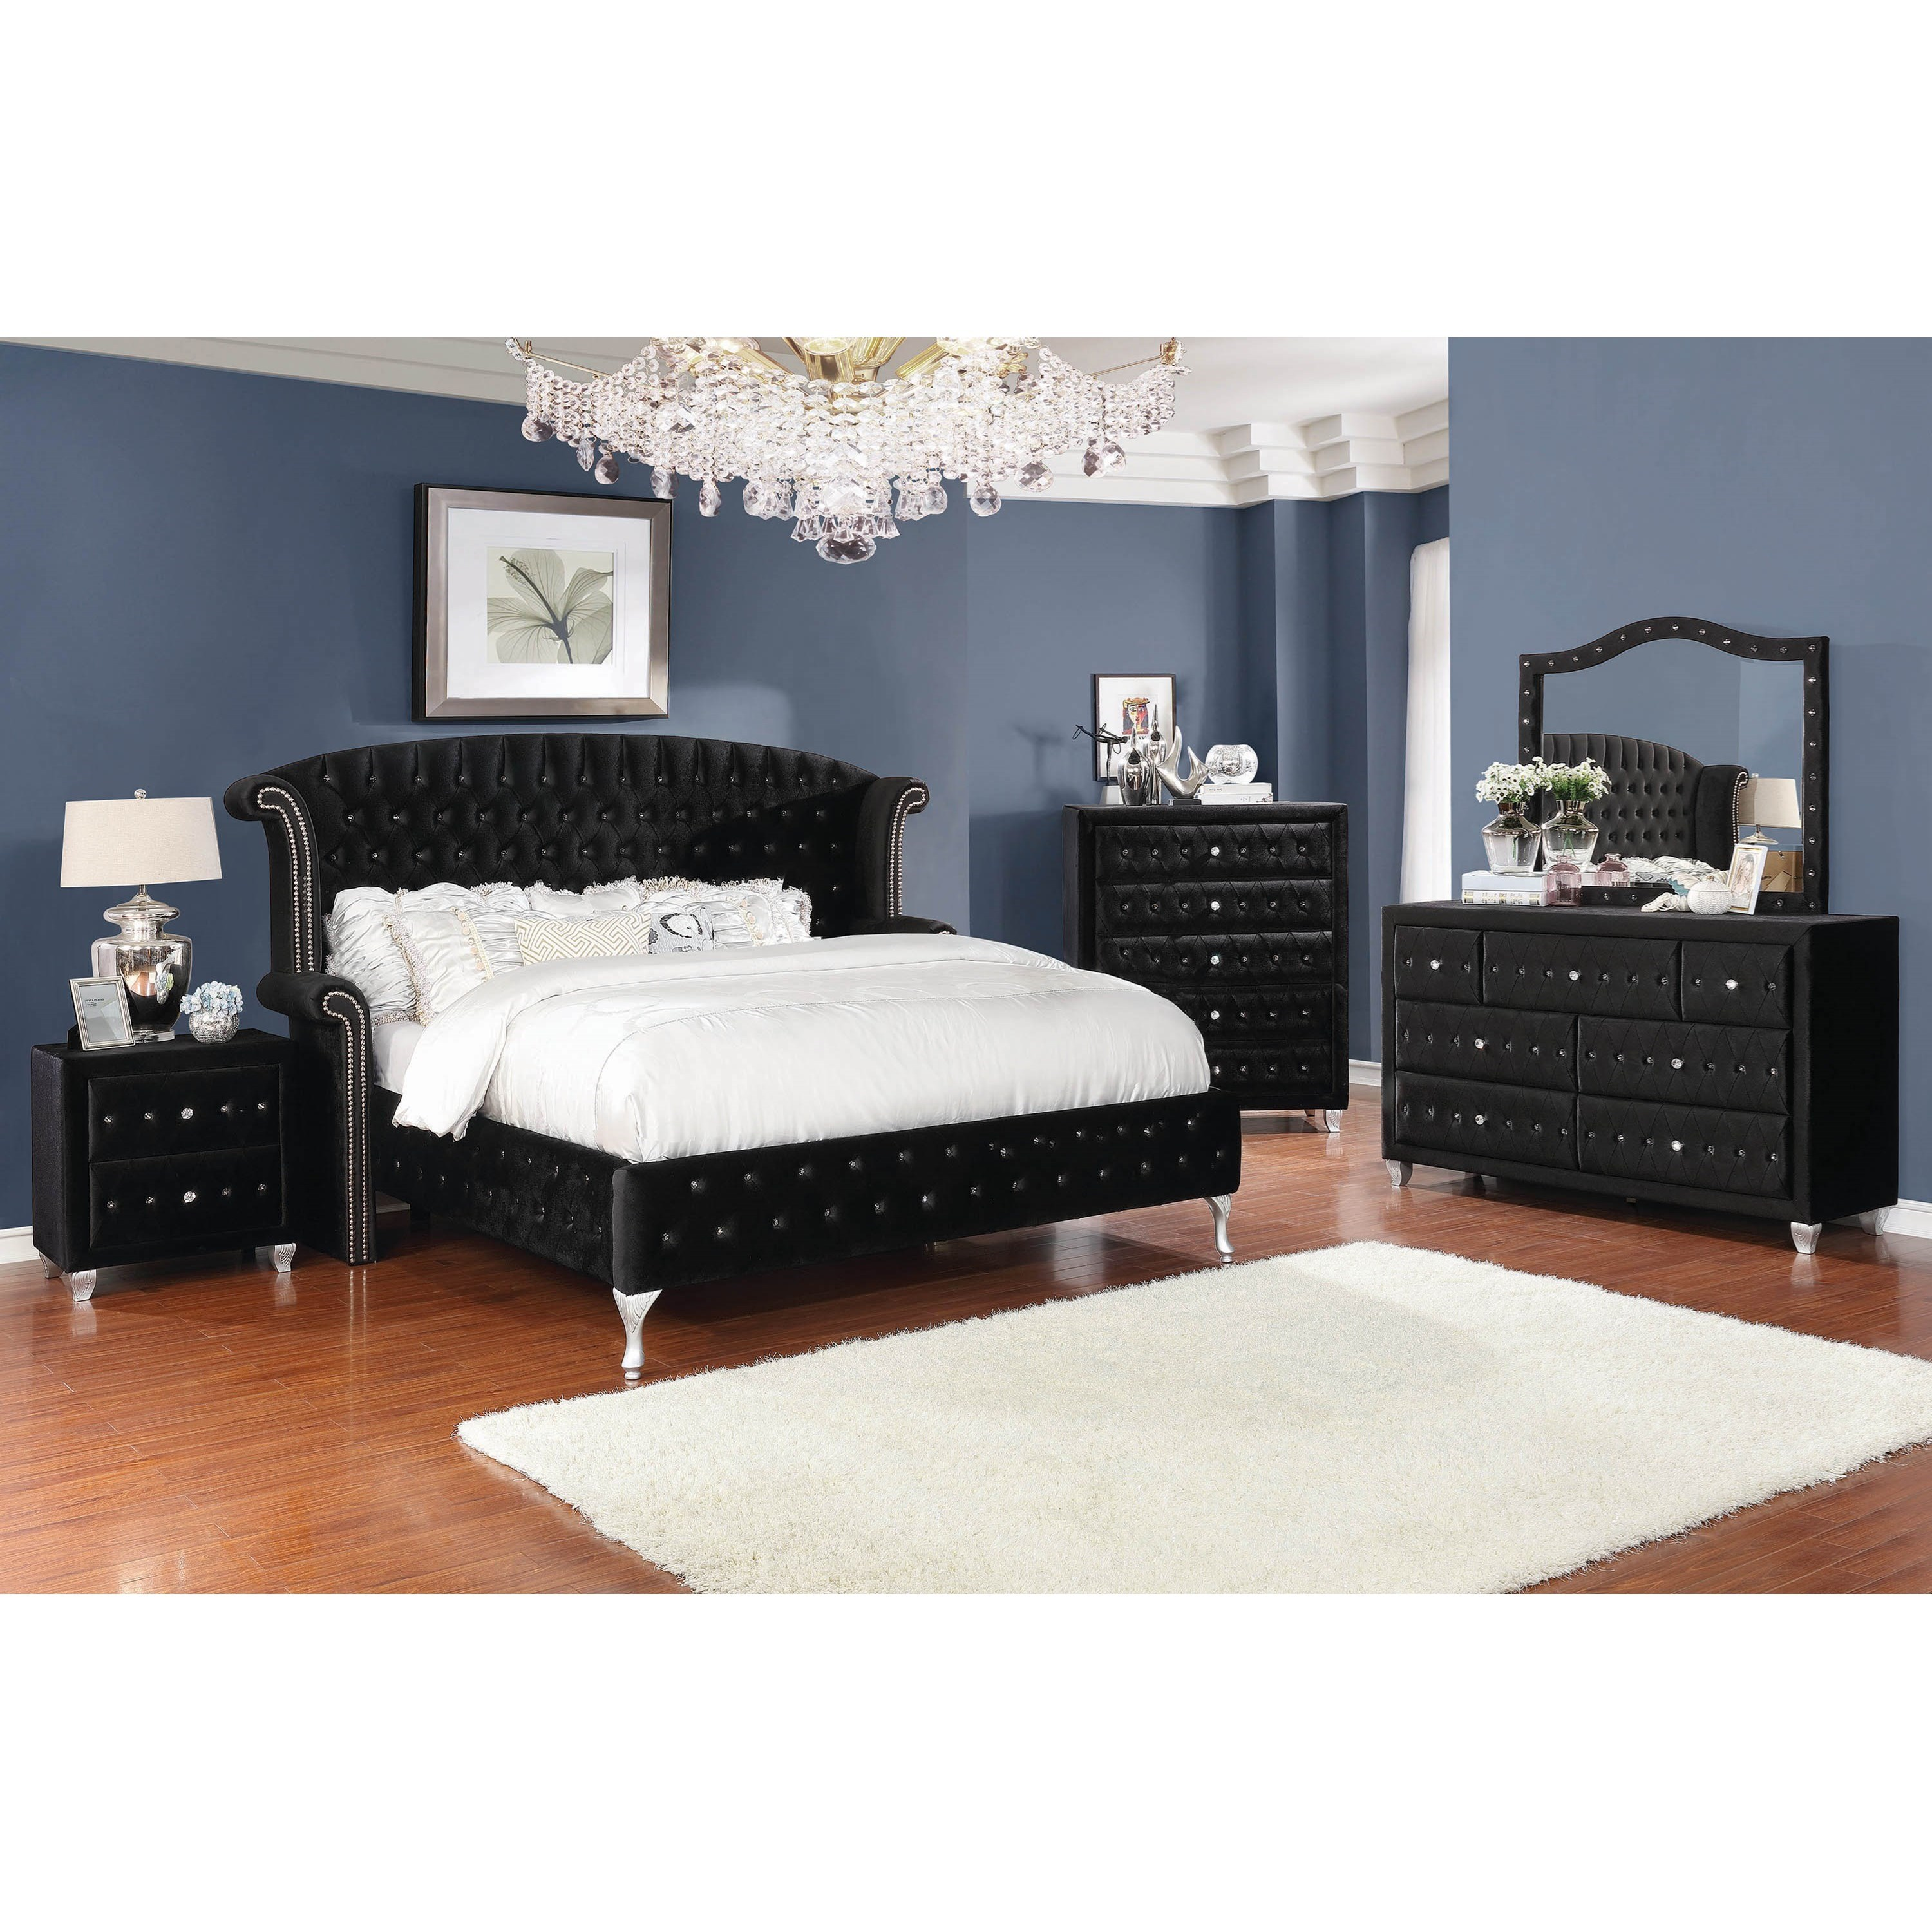 Deanna King Bedroom Group by Coaster at Northeast Factory Direct